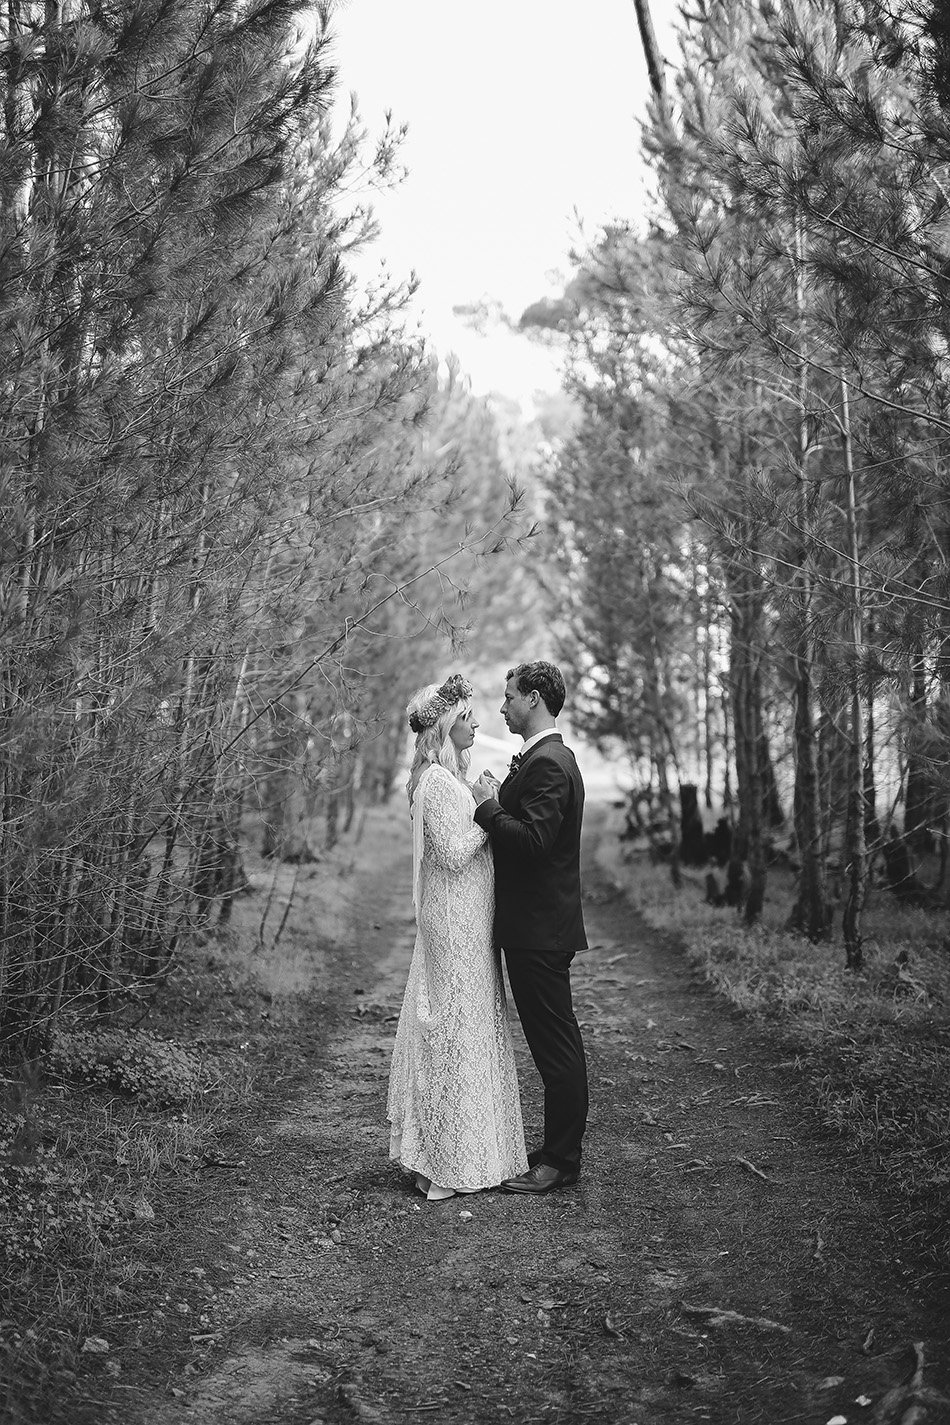 Nadia&Charl {Married@Winery Road Forest, R44}-1480